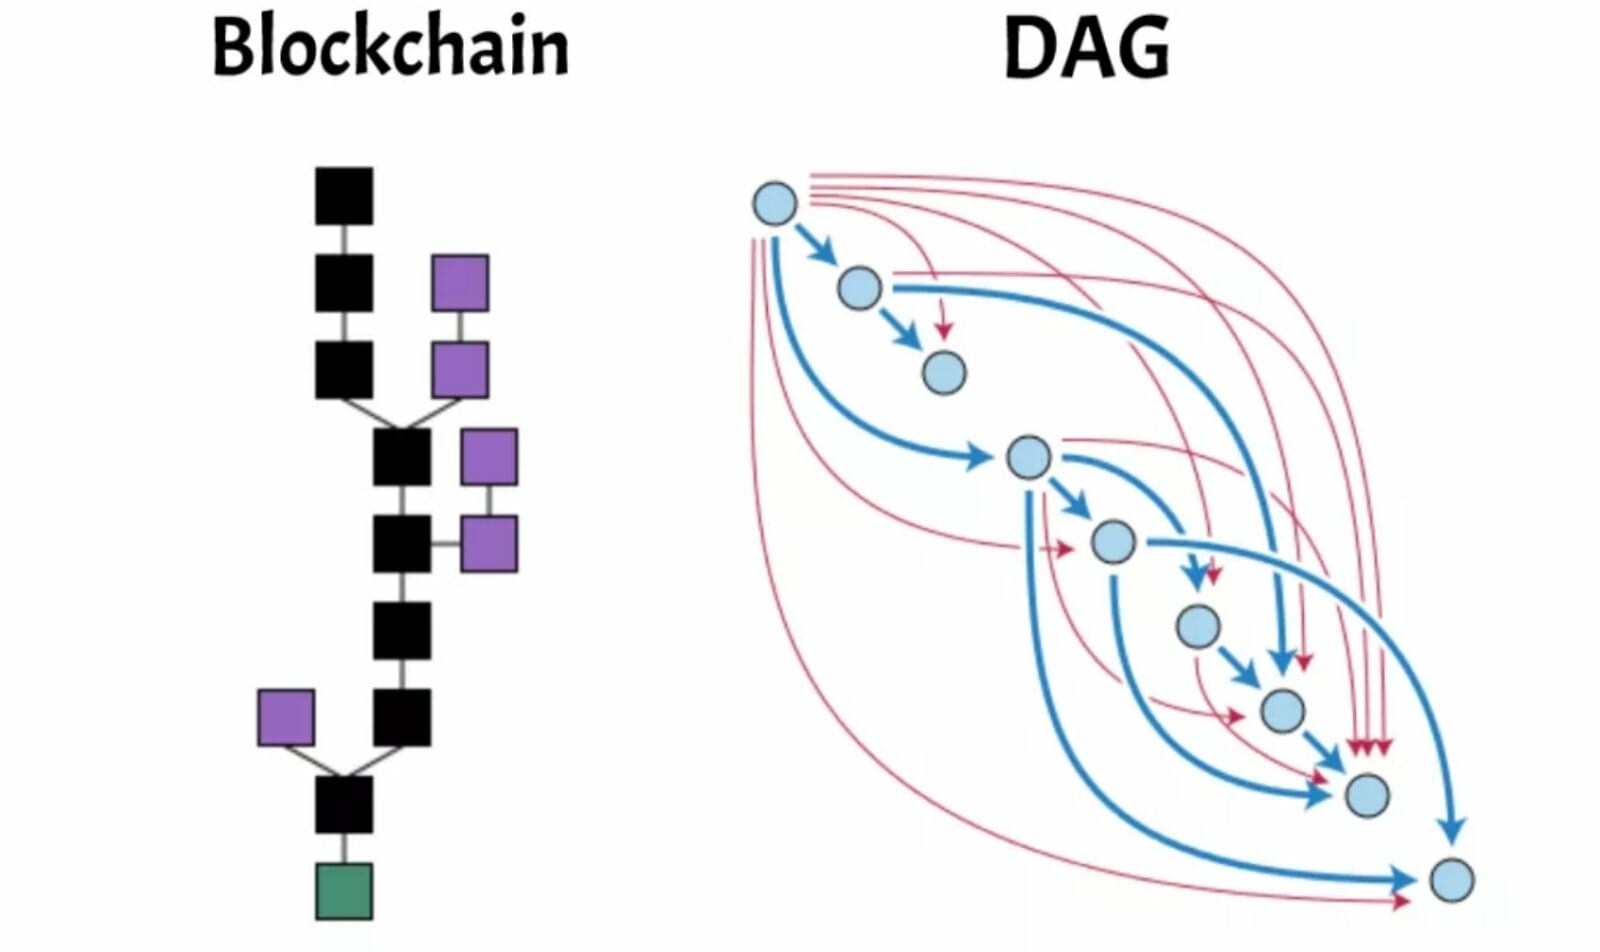 Difference between blockchain and DAG